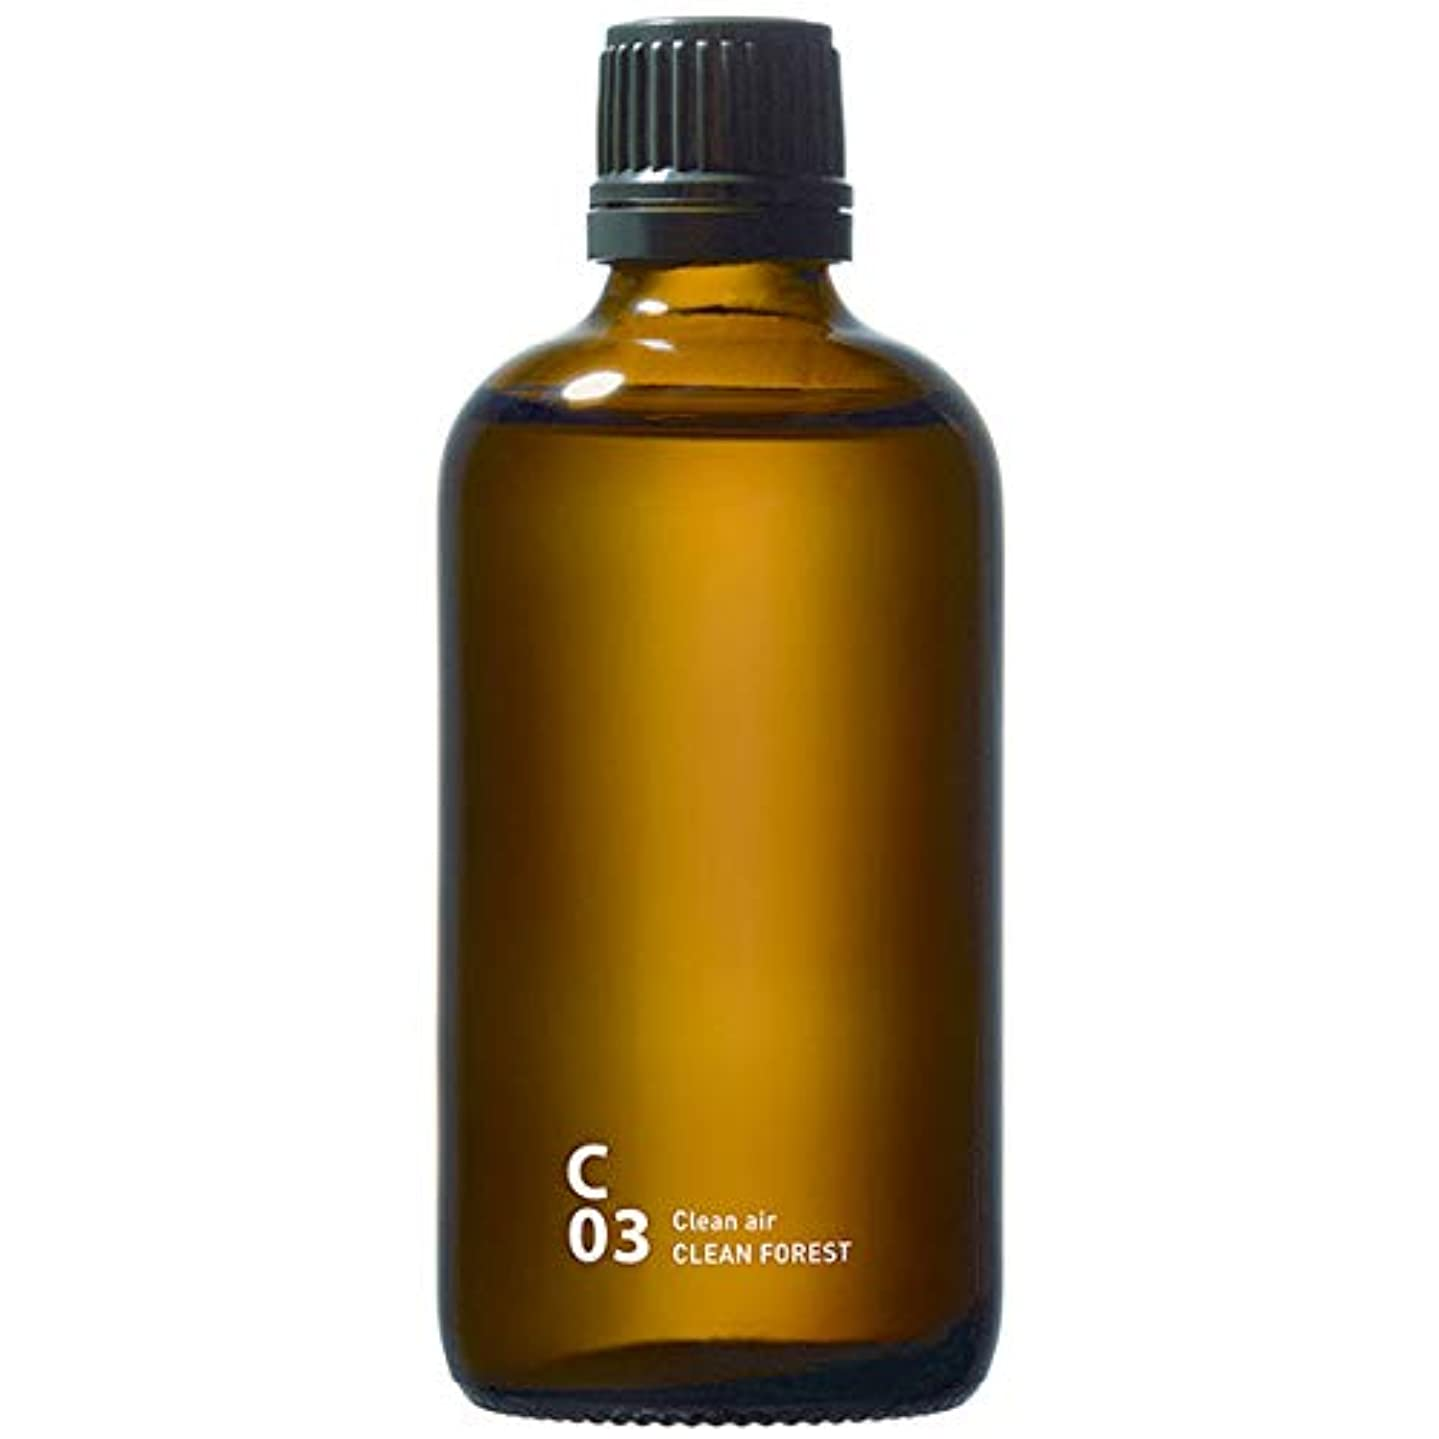 ピカリング外交官赤面C03 CLEAN FOREST piezo aroma oil 100ml